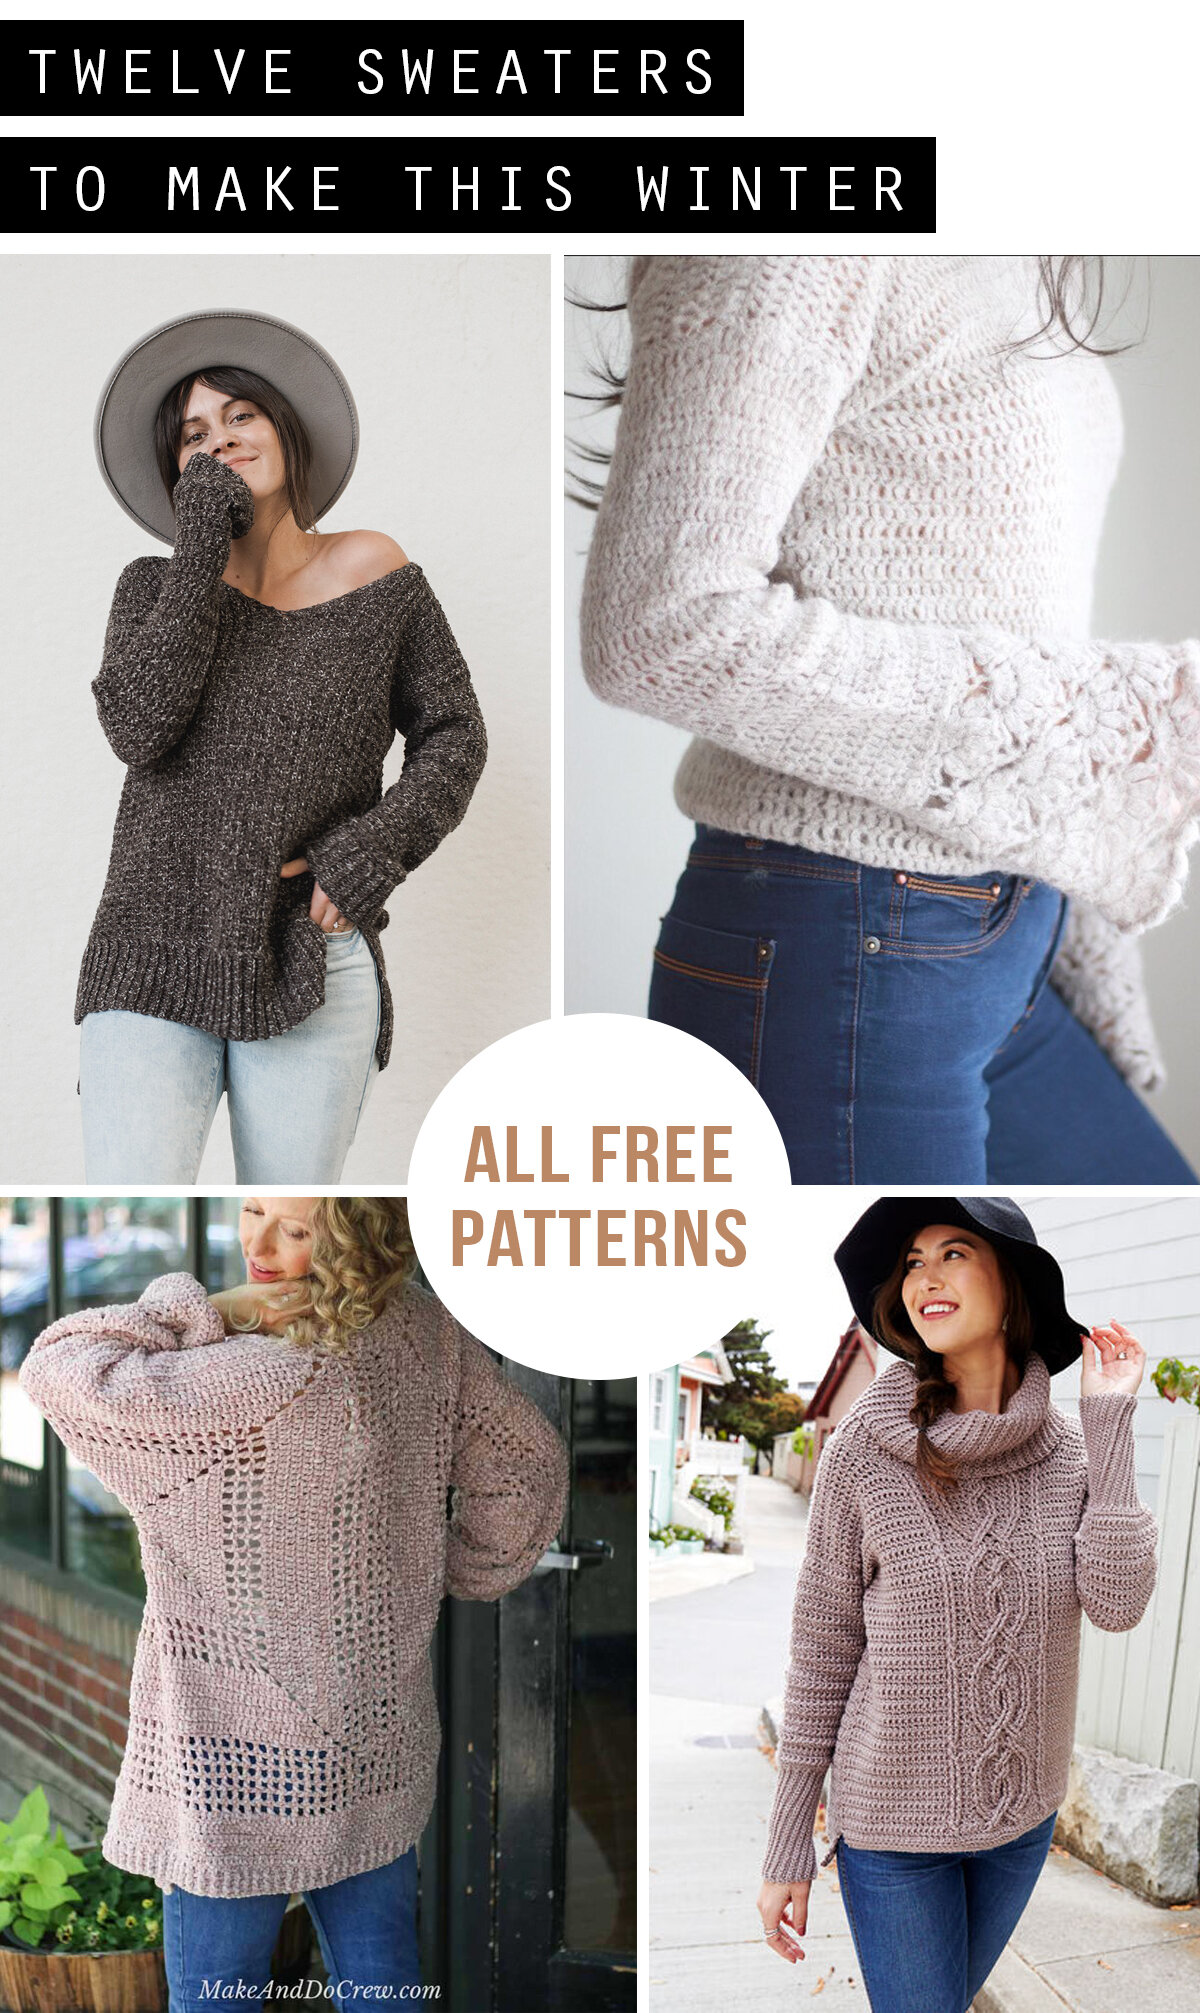 Twelve Free Crochet Sweater Patterns To Make This Winter Megmade With Love